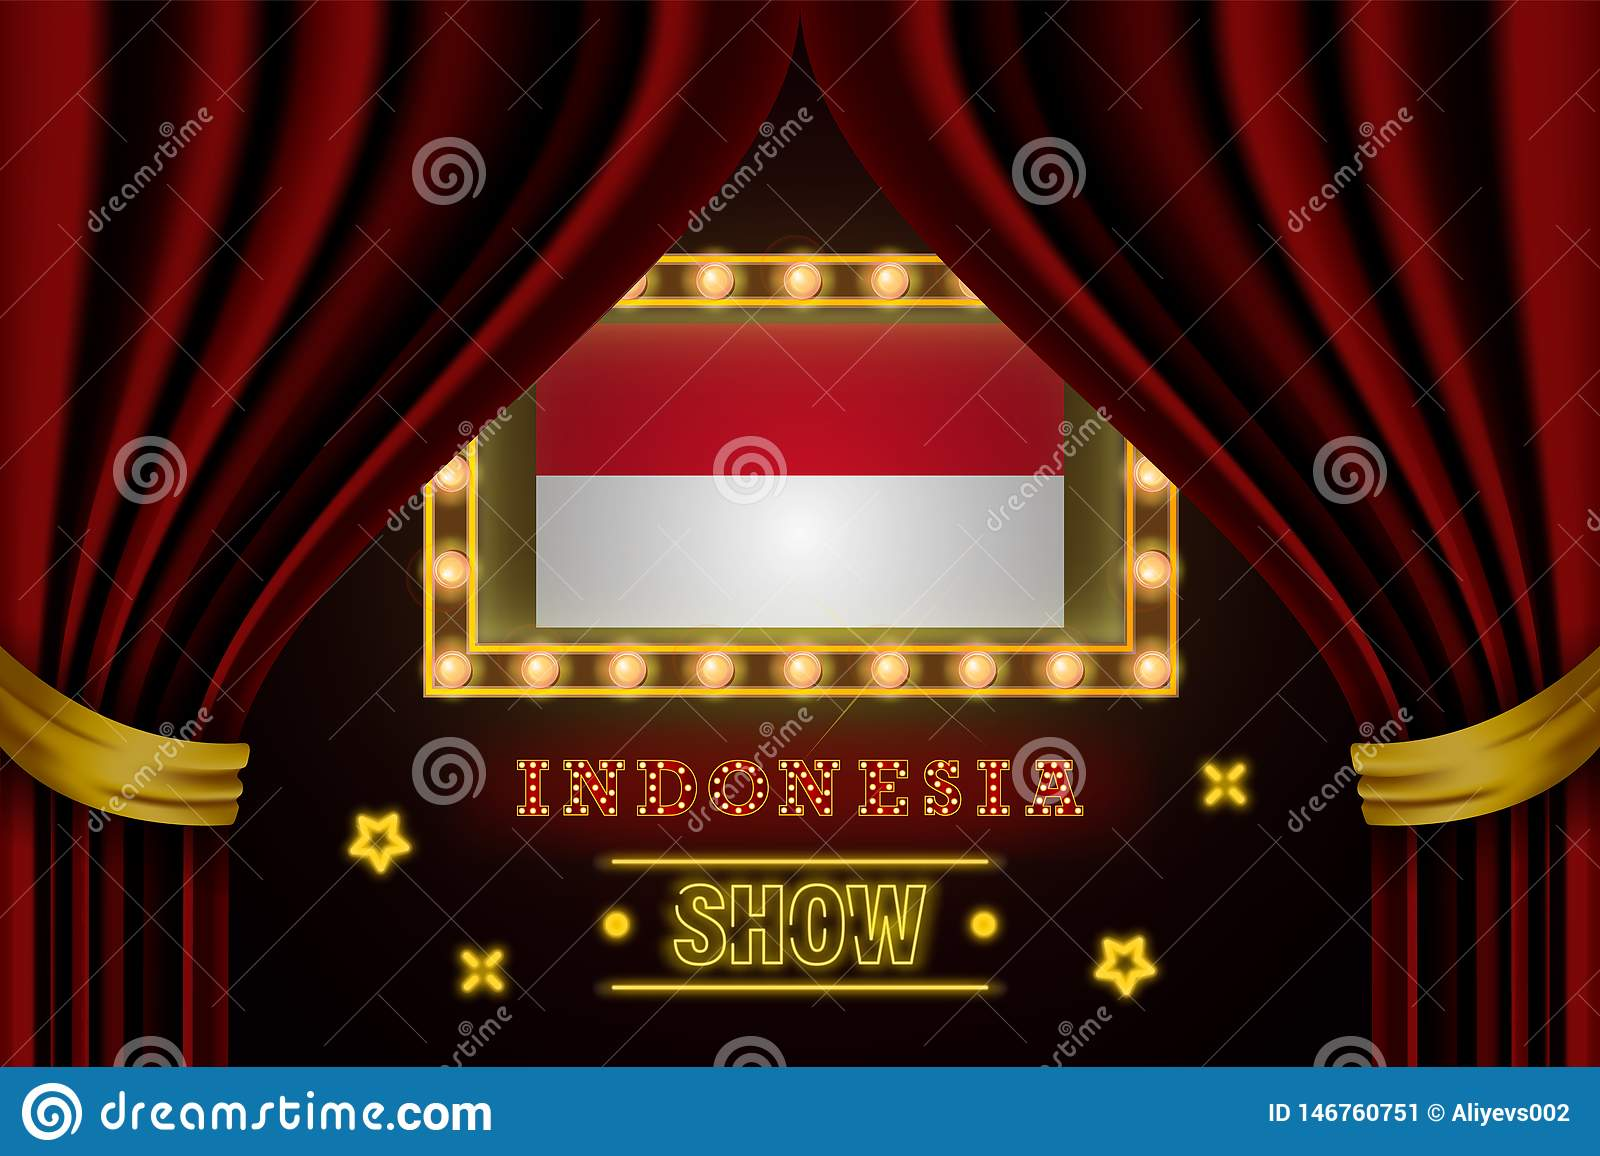 Show Time Board For Performance Cinema Entertainment Roulette Poker Of Indonesia Country Event Shining Light Bulbs Vintage Of Stock Illustration Illustration Of Jakarta National 146760751